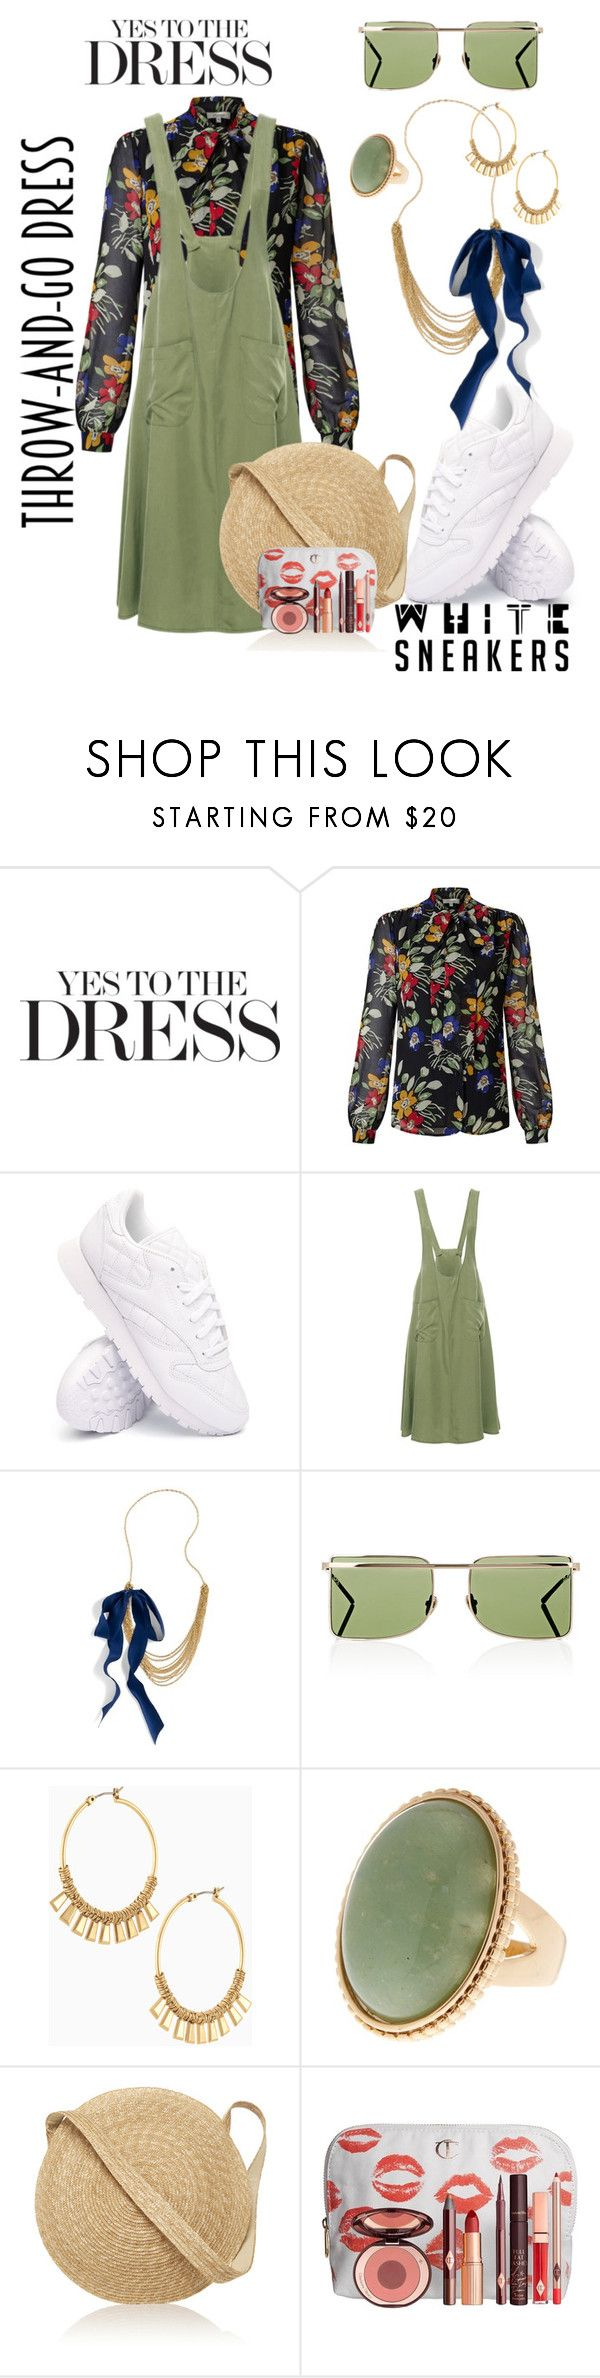 """In the Mix of Style"" by daincyng ❤ liked on Polyvore featuring Somerset by Alice Temperley, Reebok, J.Crew, Calvin Klein 205W39NYC, Stella & Dot, Samuji, Charlotte Tilbury, whitesneakers and easydresses"